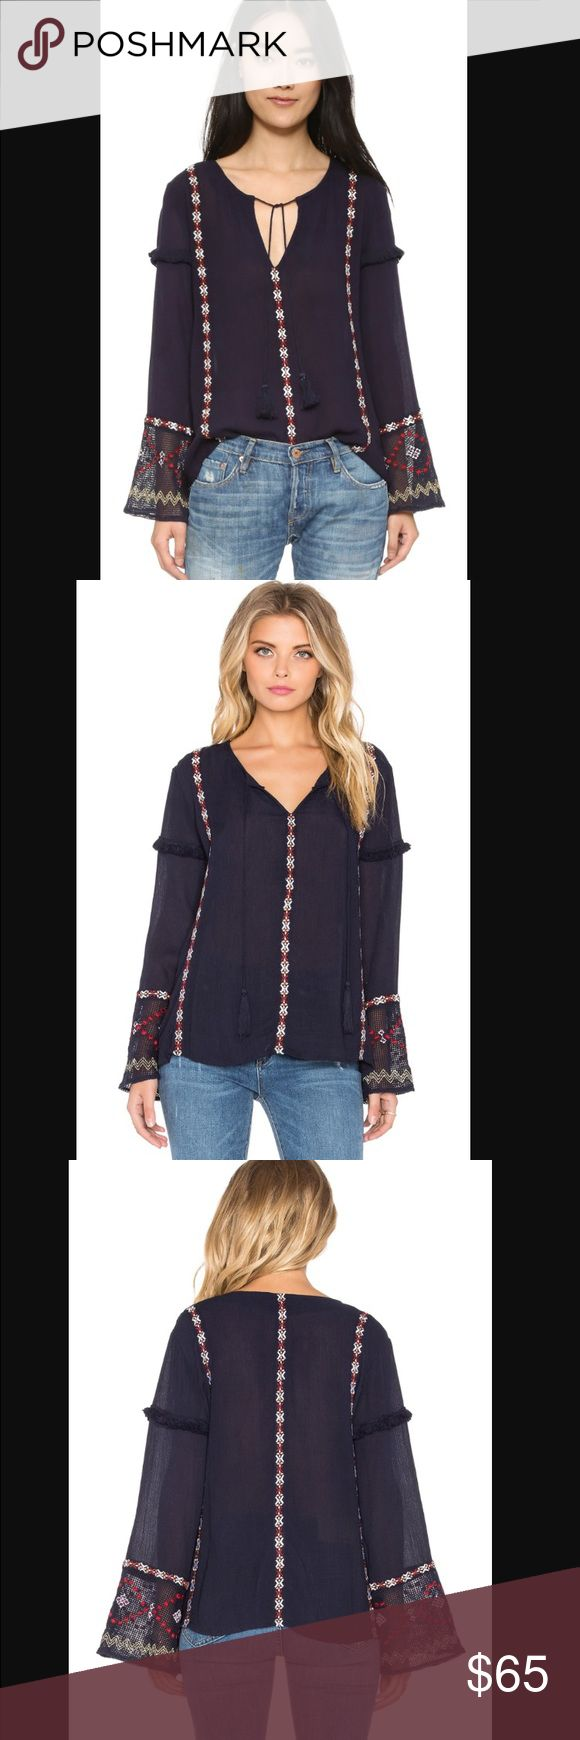 Tularosa Katarina top Cotton blend, front keyhole with tie closure, embroidered throughout, fringe trim accents, navy. Tularosa Tops Blouses